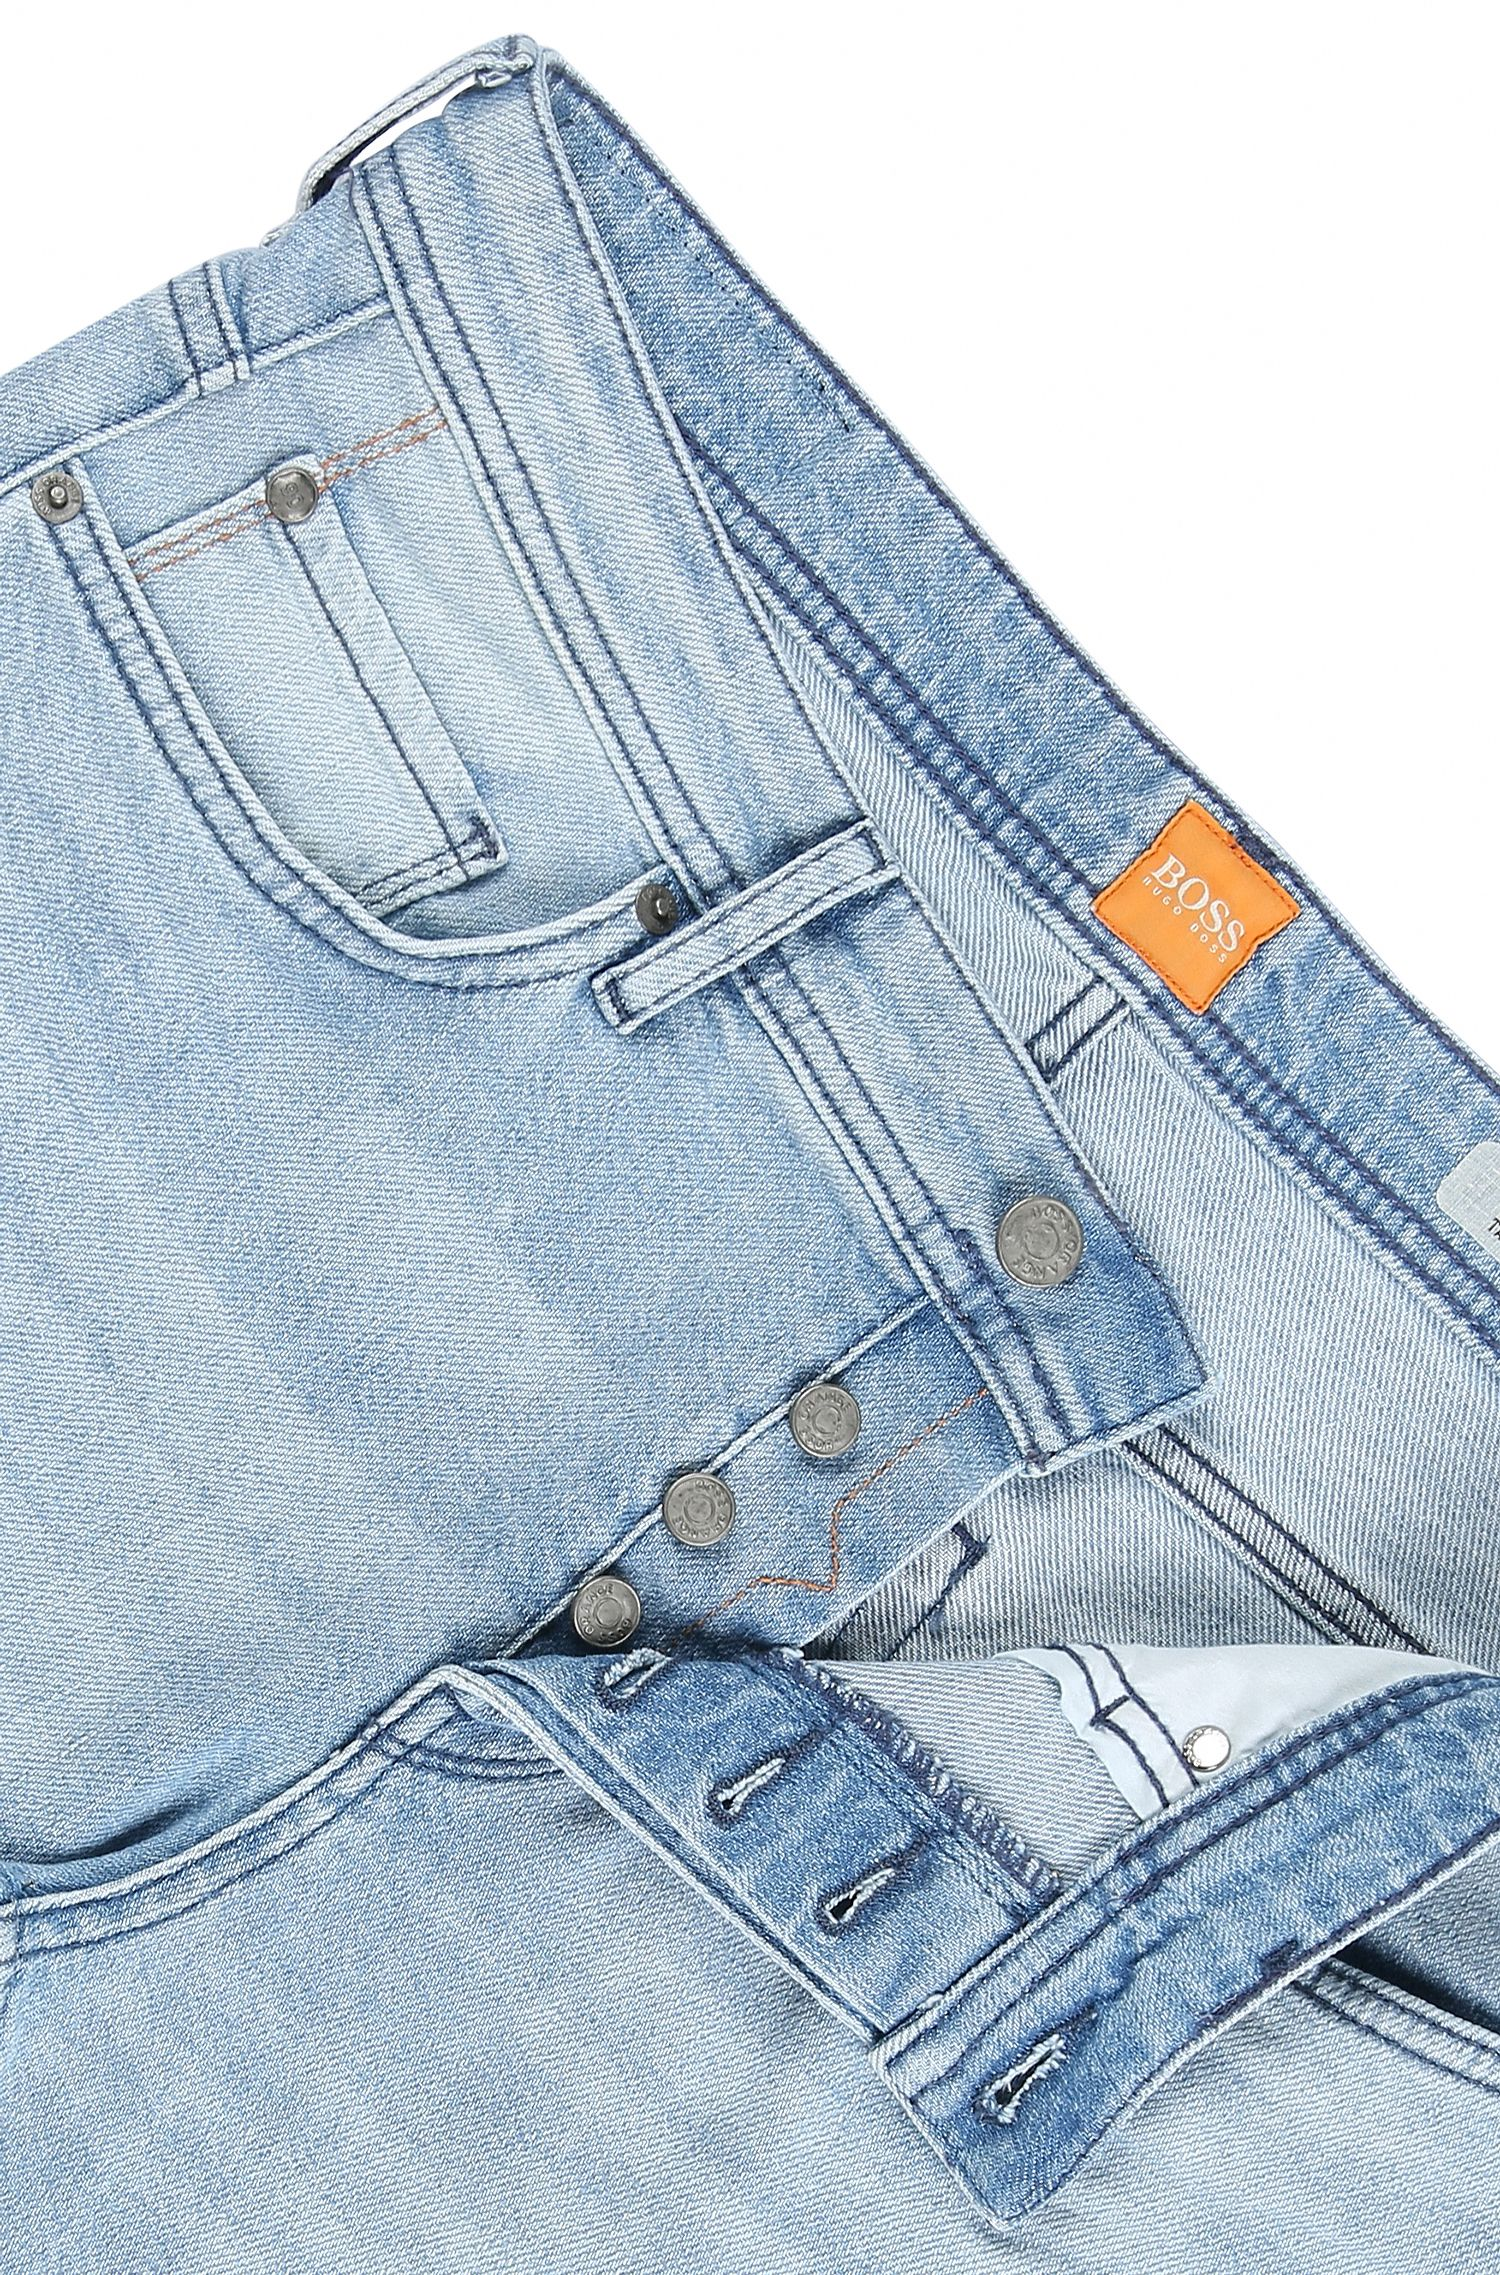 Stretch Cotton Jeans, Tapered Fit | Orange90, Blue